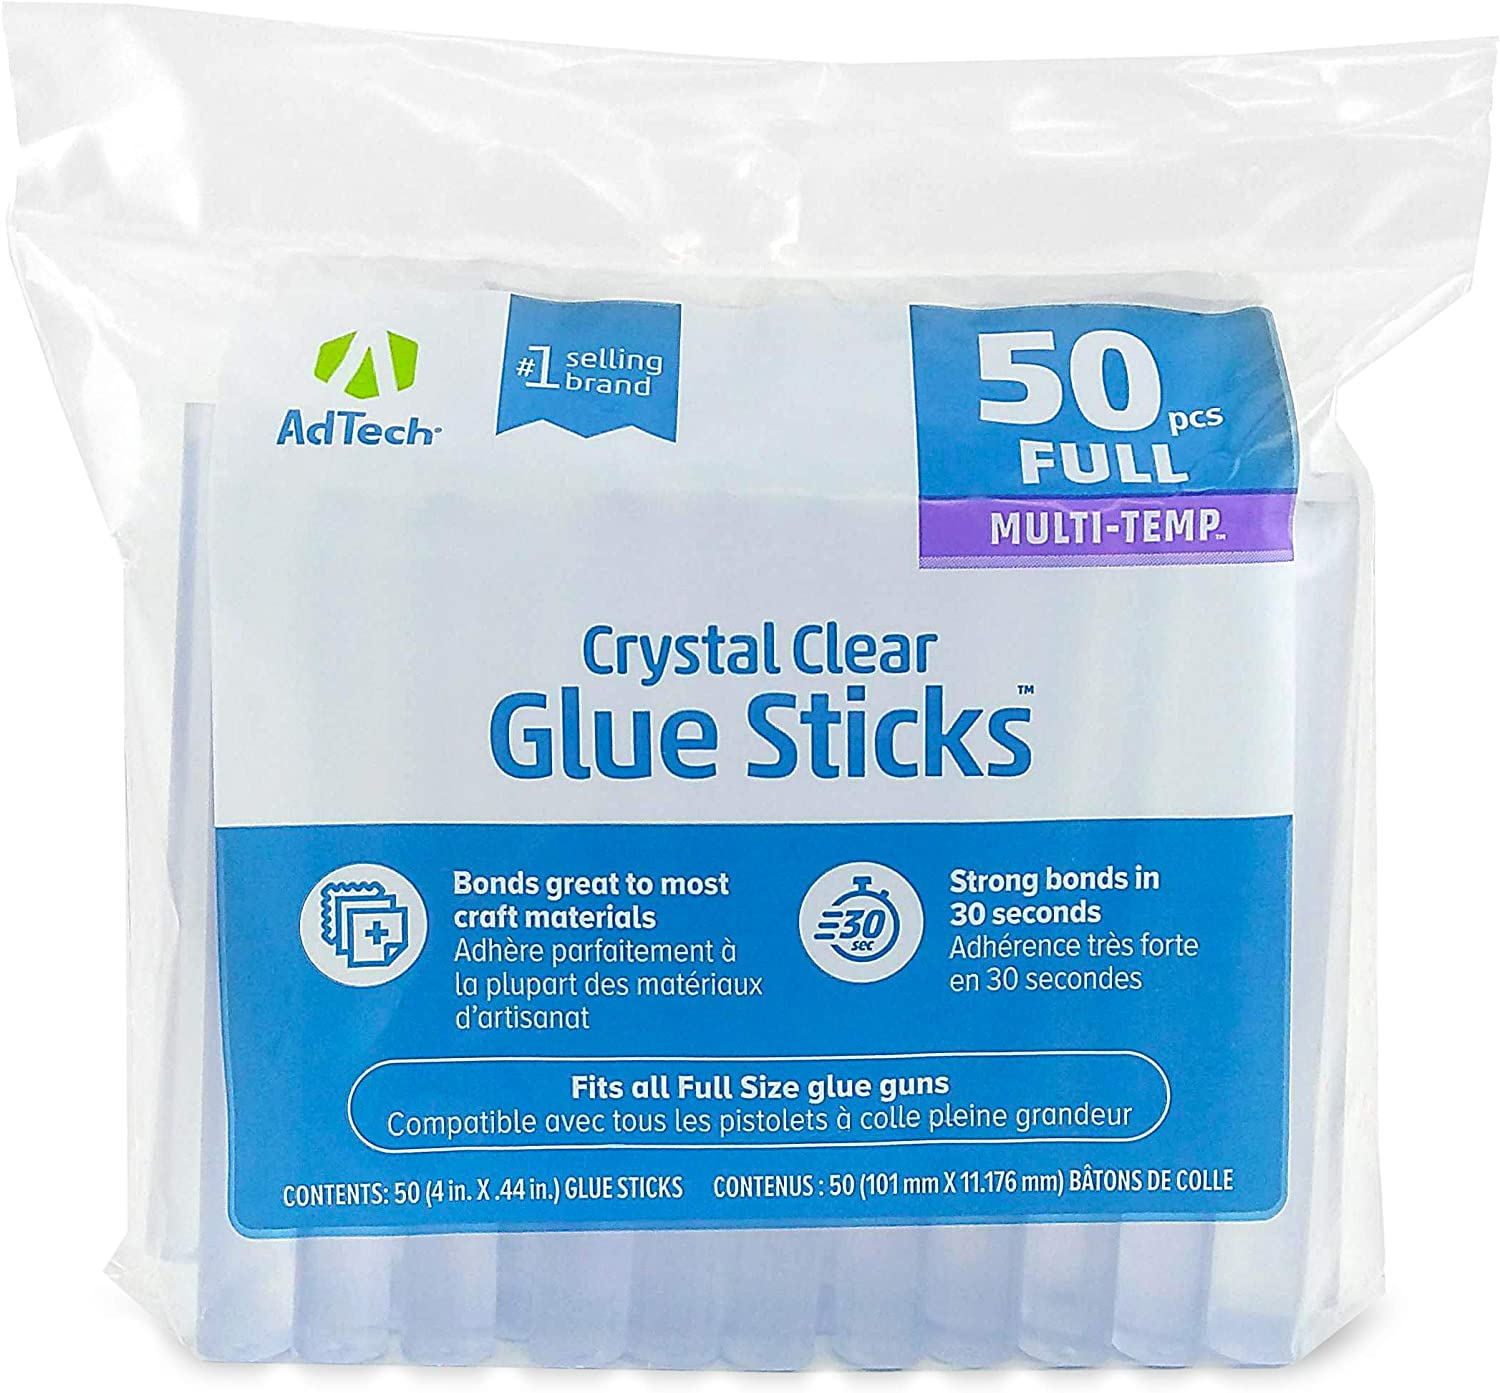 """Adtech (220-14ZIP50) Full-Size Hot purpose glue sticks for crafting, scrapbooking & more, 4"""" 50ct, Clear, 50 Count - Arts And Crafts Glue Guns"""